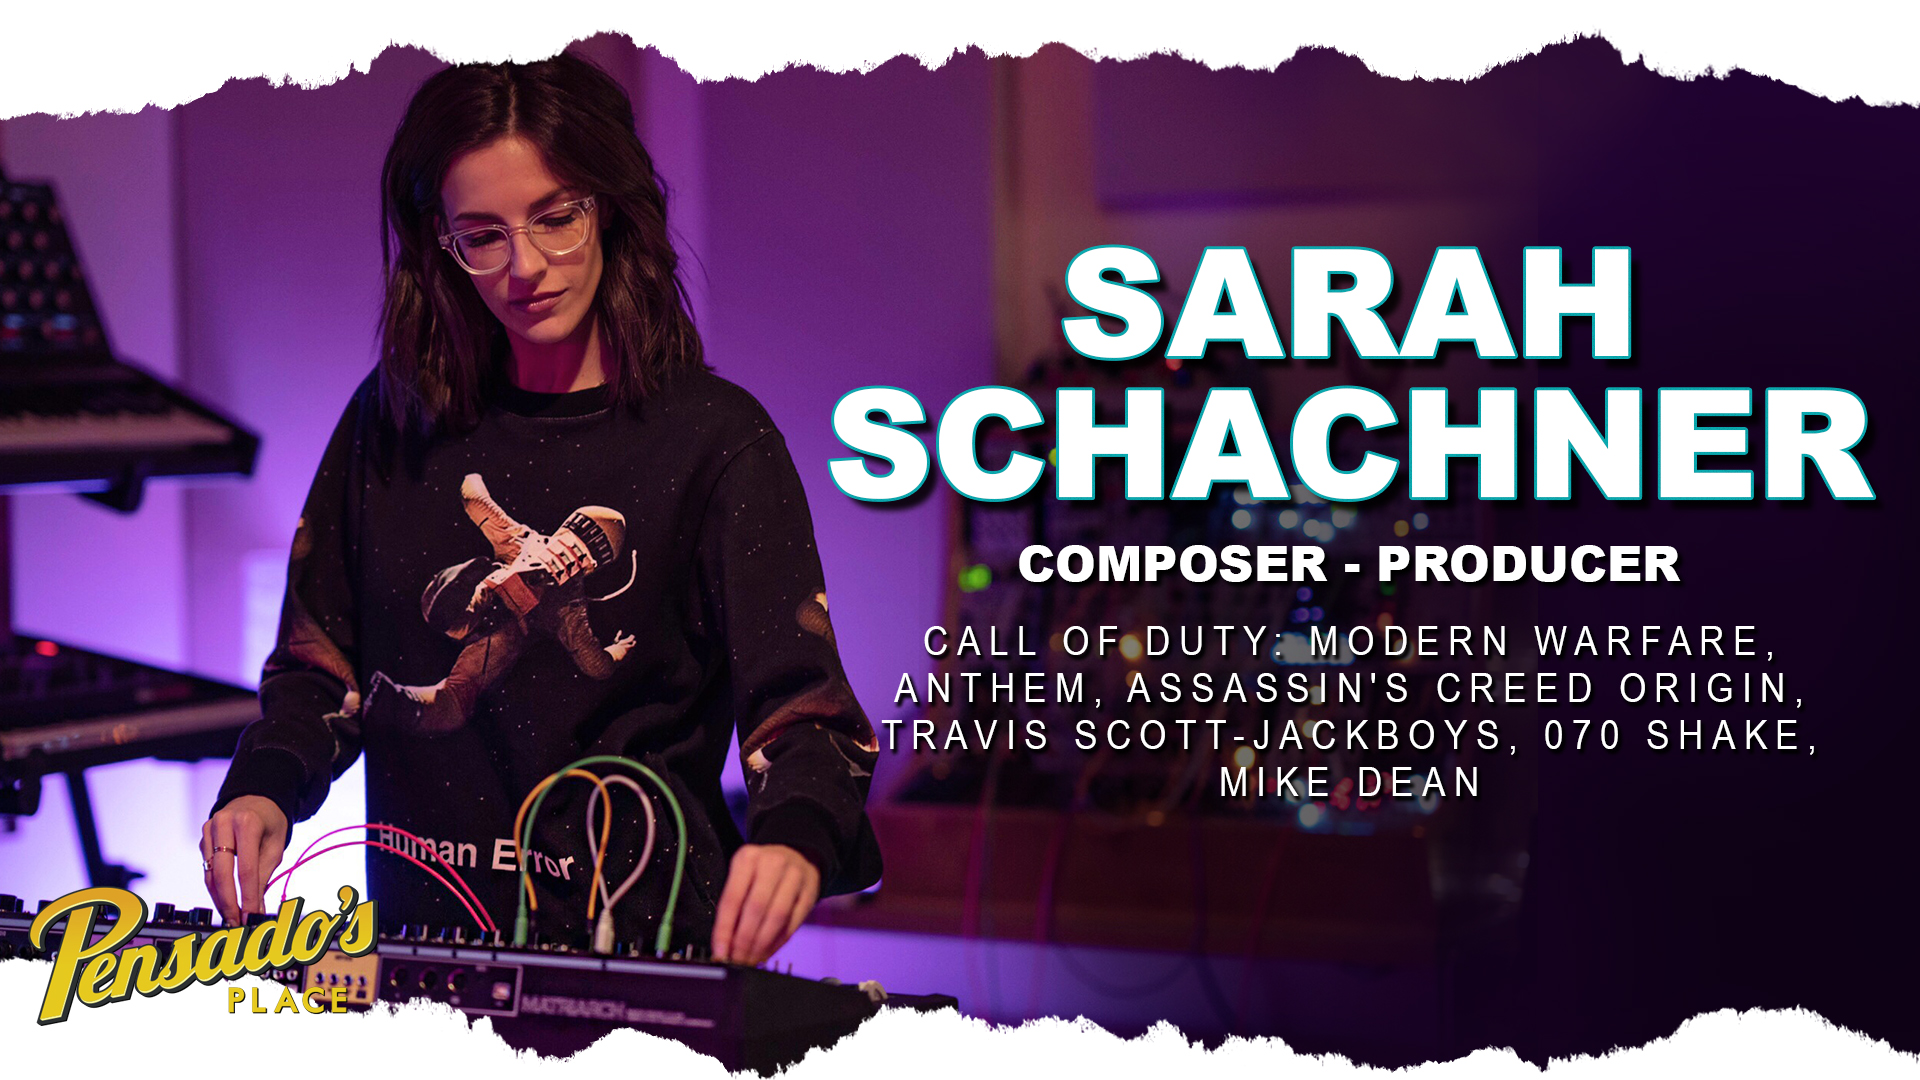 """Call of Duty: Modern Warfare"" Composer / Producer, Sarah Schachner"